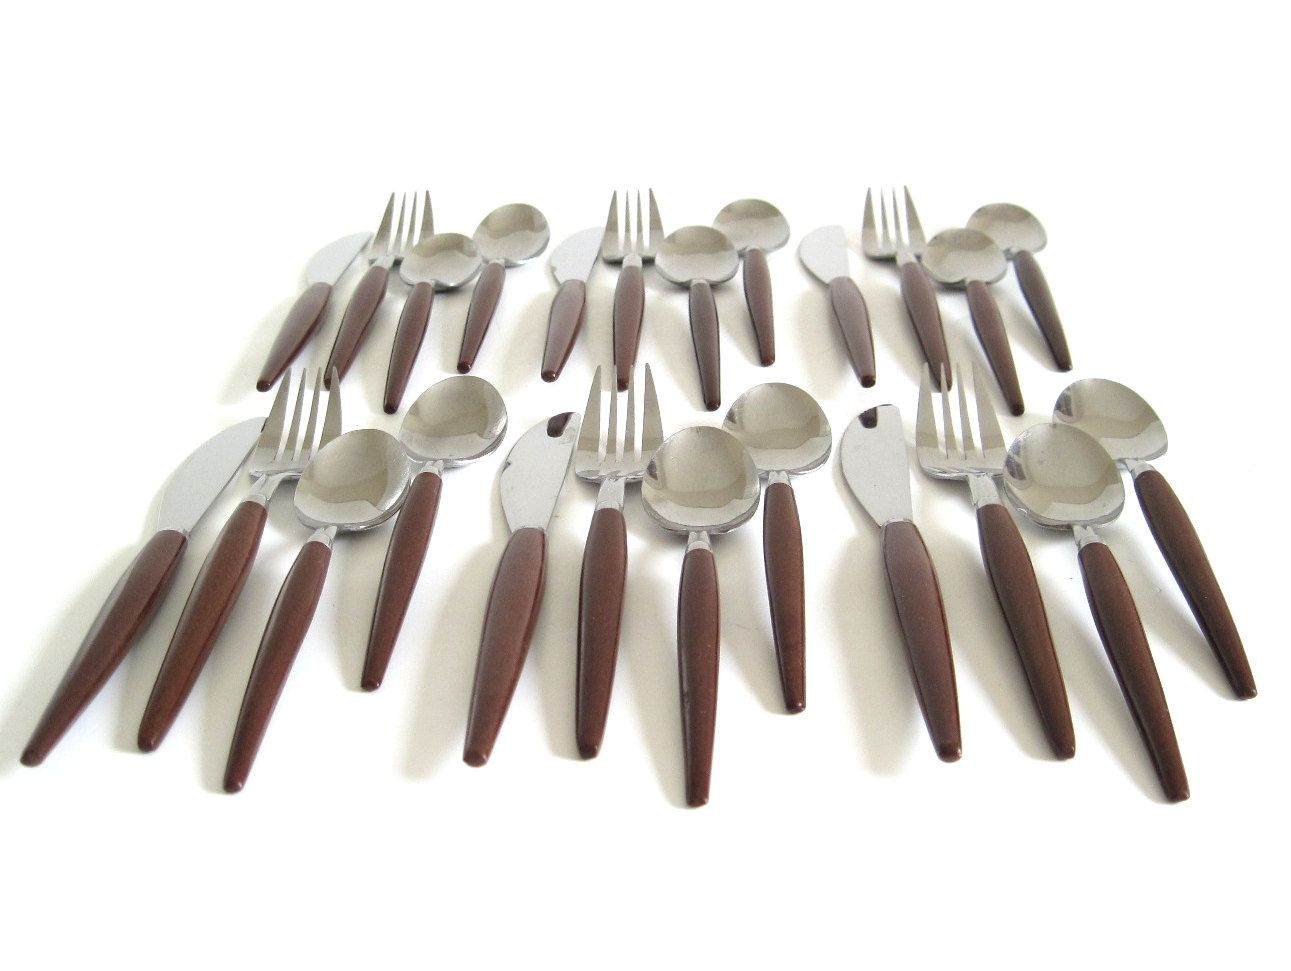 stainless flatware set wood handles  basic service for   - ornate stainless flatware set northland stainless japan malmaison basicservice for  or  floral pattern silverware